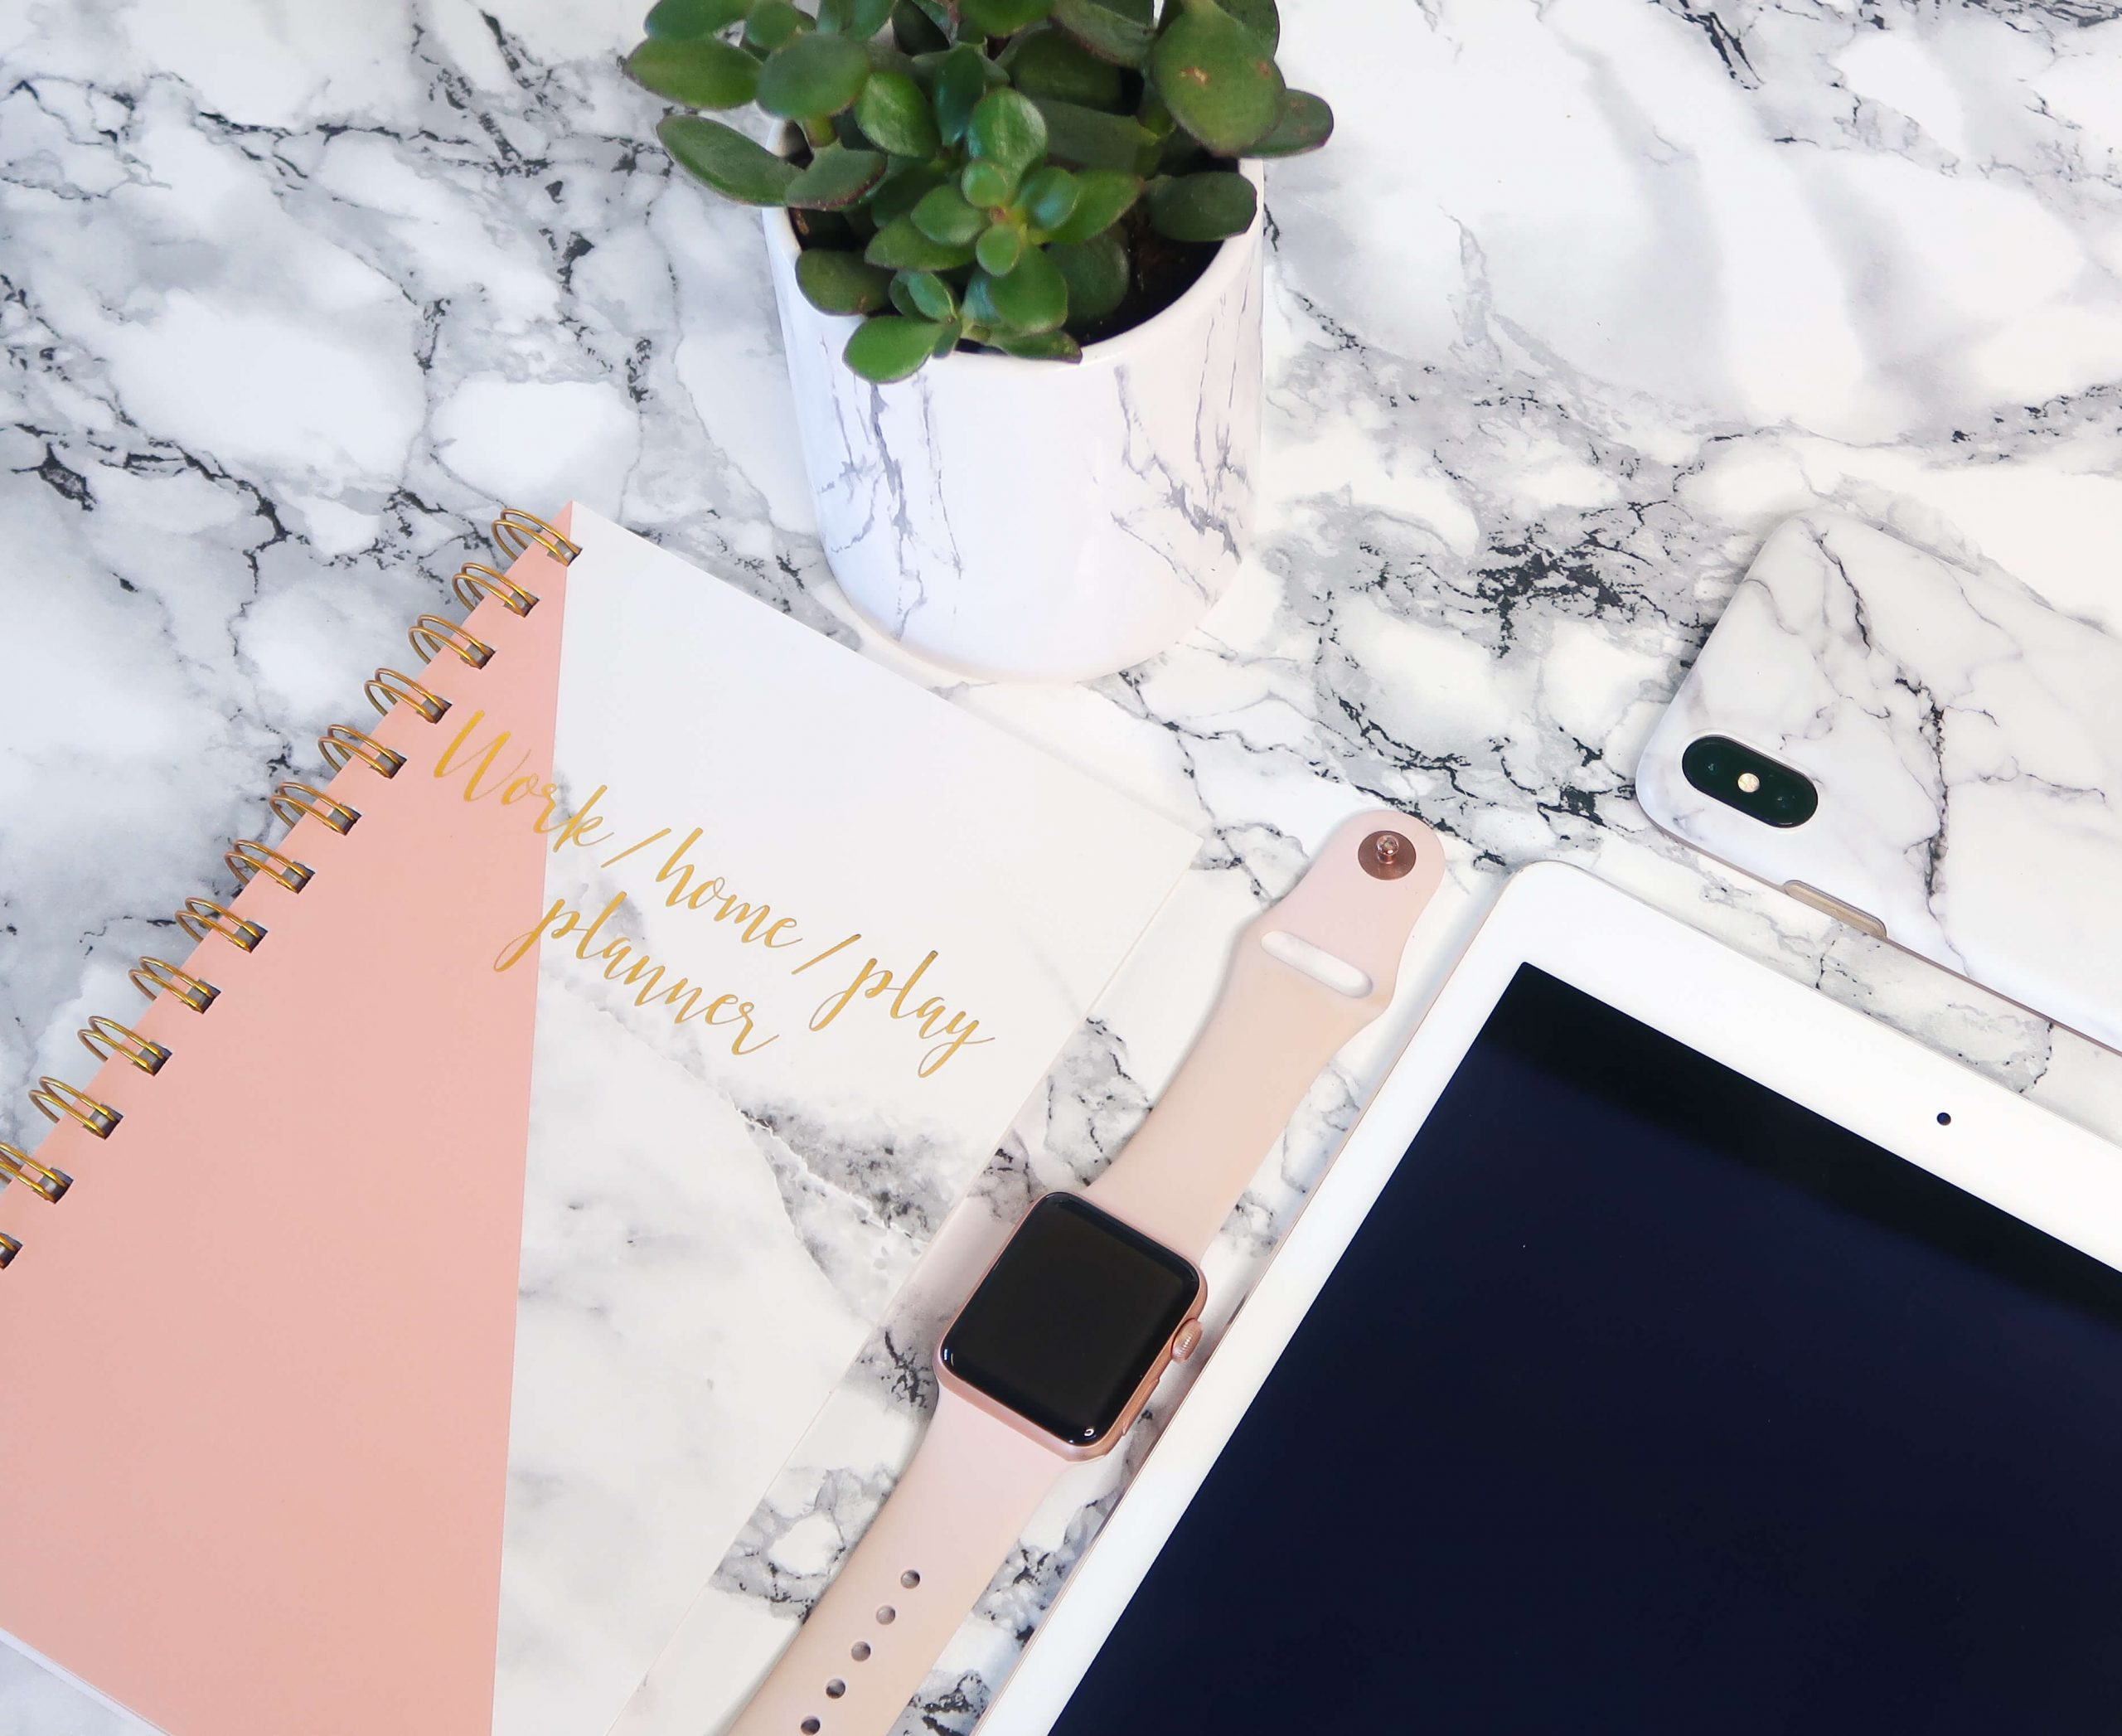 Ipad, Smart phone, planner and plant